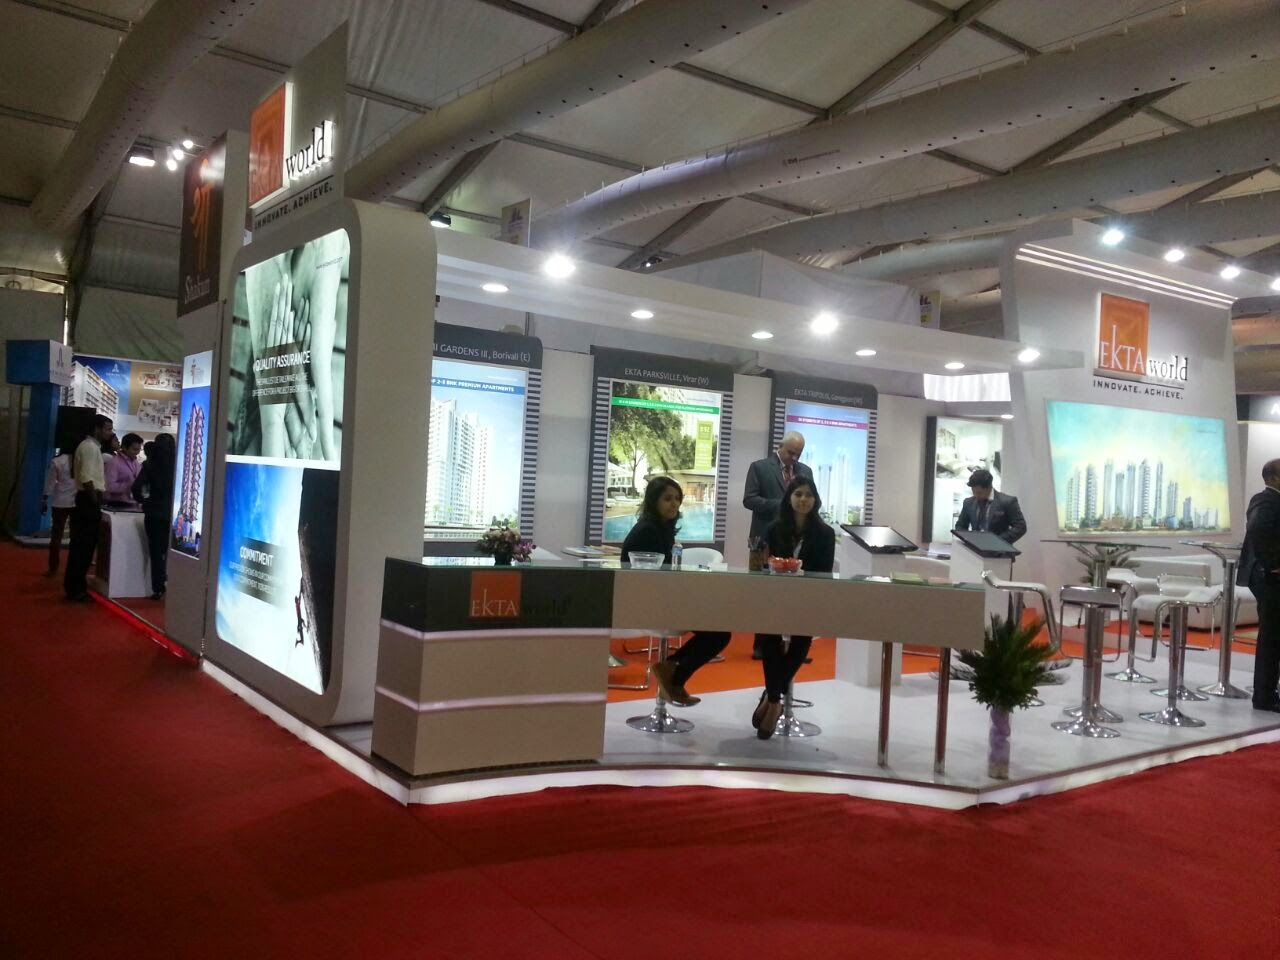 Real Estate Exhibition Stall : Pride life property exhibit sqm stall by dipesh bhovad at